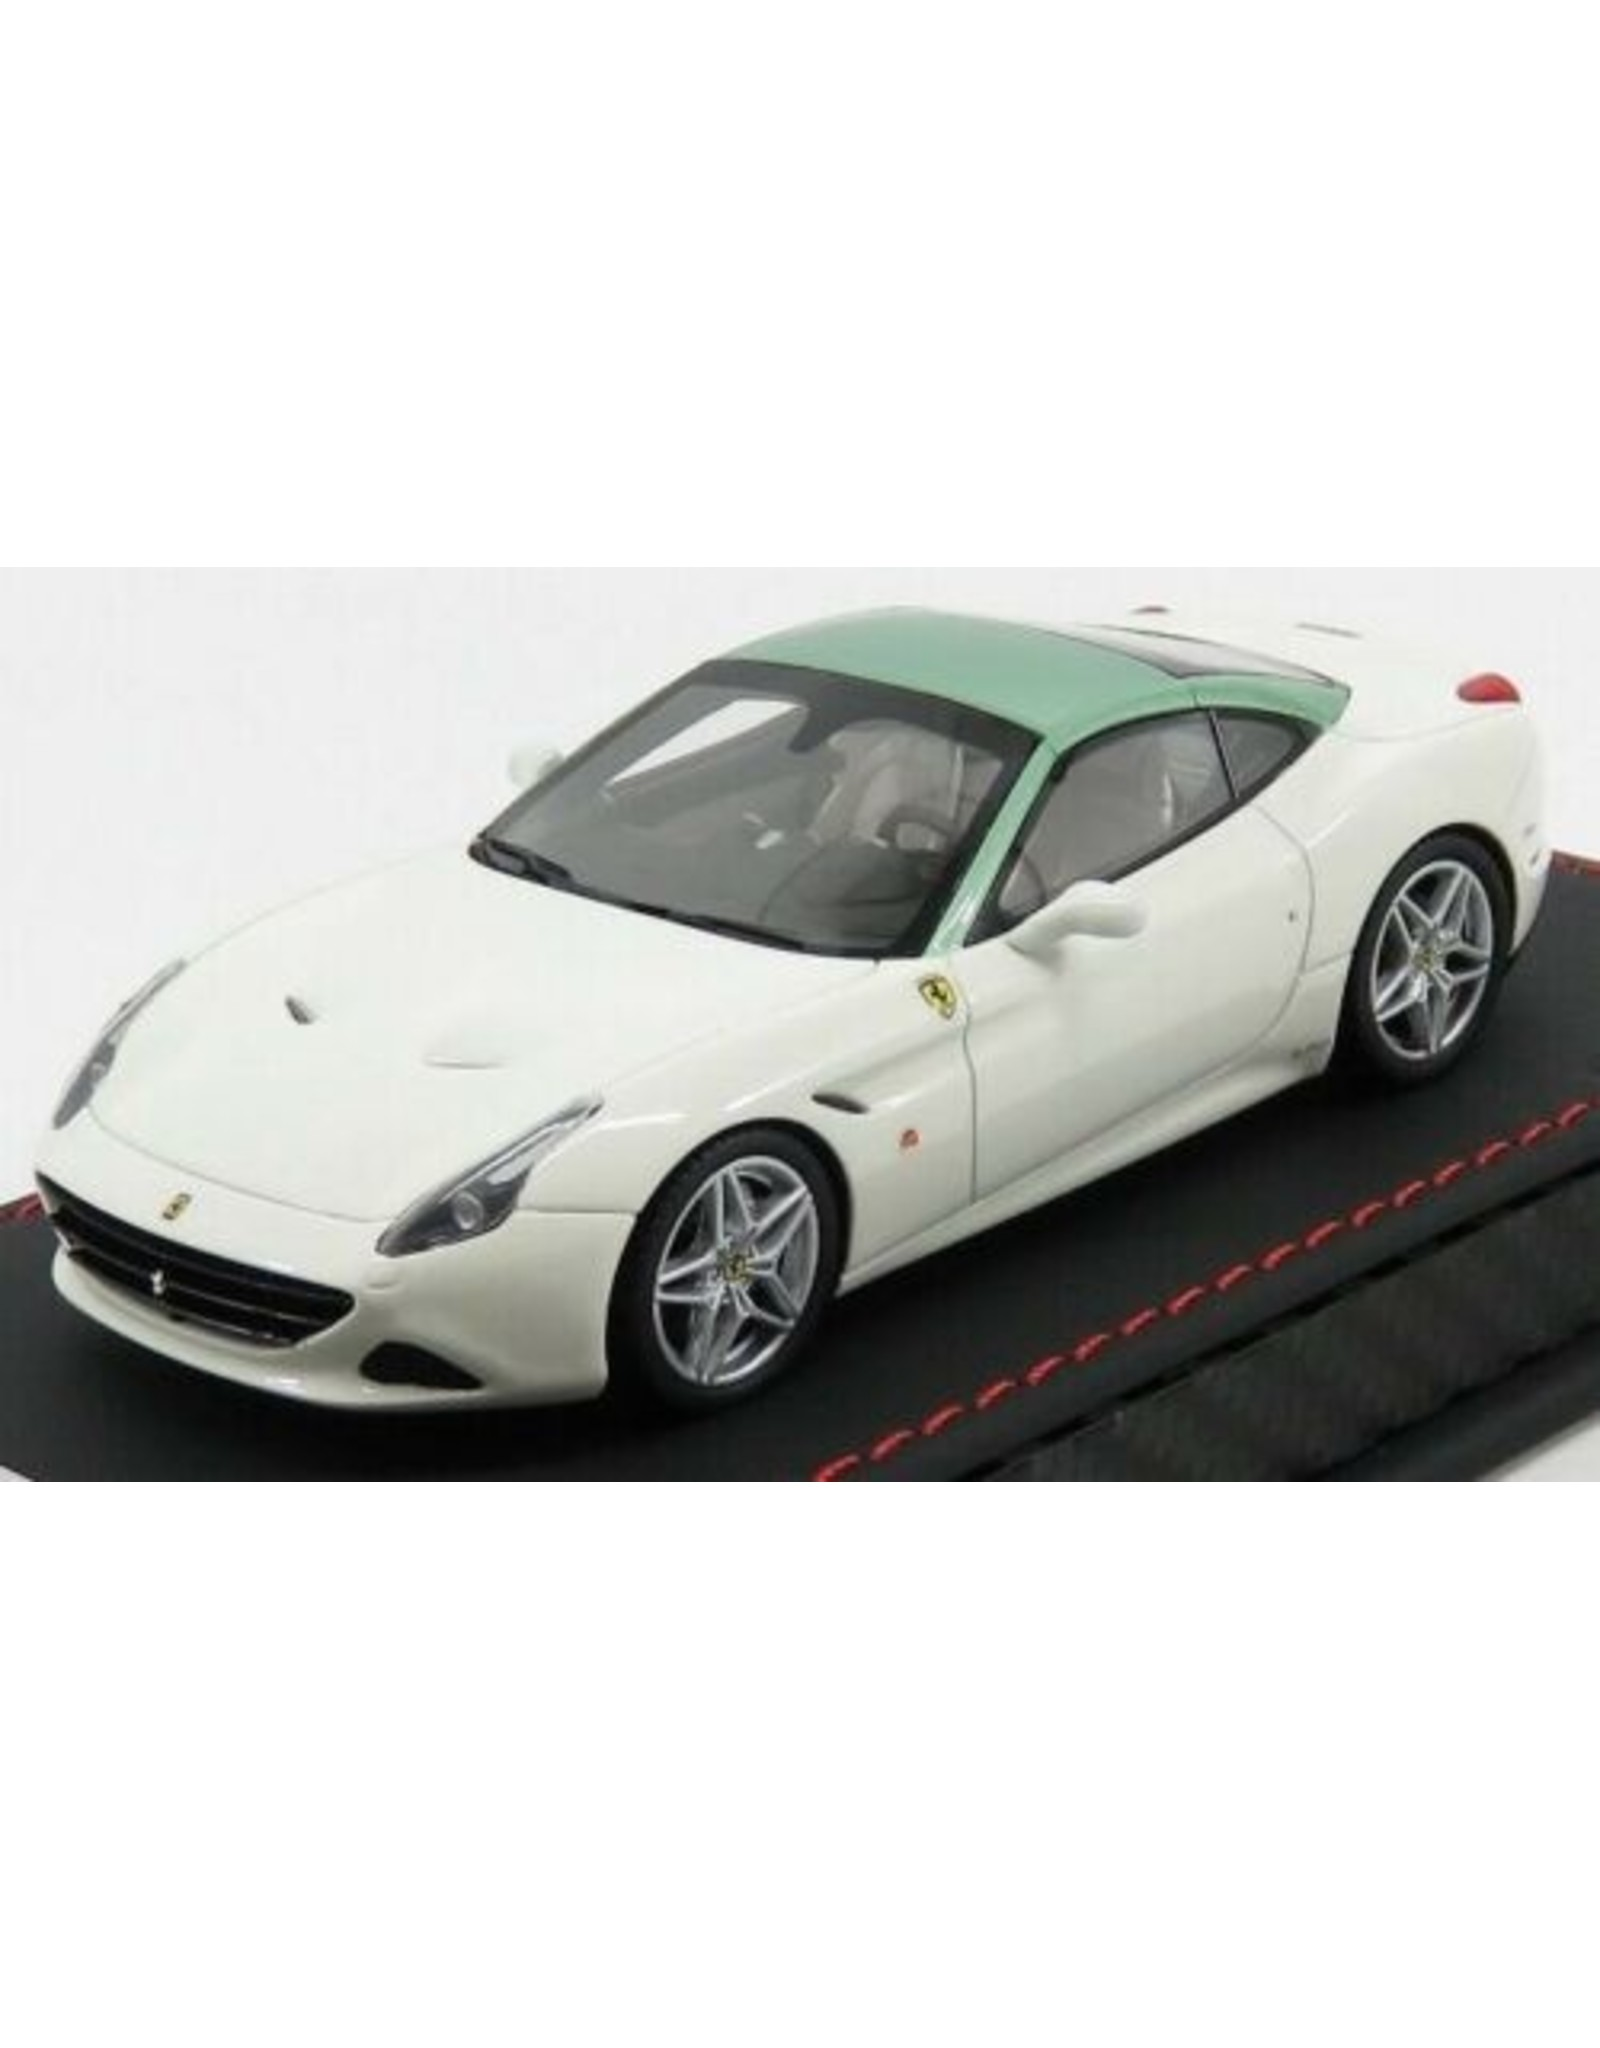 Ferrari Ferrari California T Spider Closed Roof 2014 Inspired by 250 GT Pininfarina Coupe 70th Anniversary - 1:43 - MR Collection Models